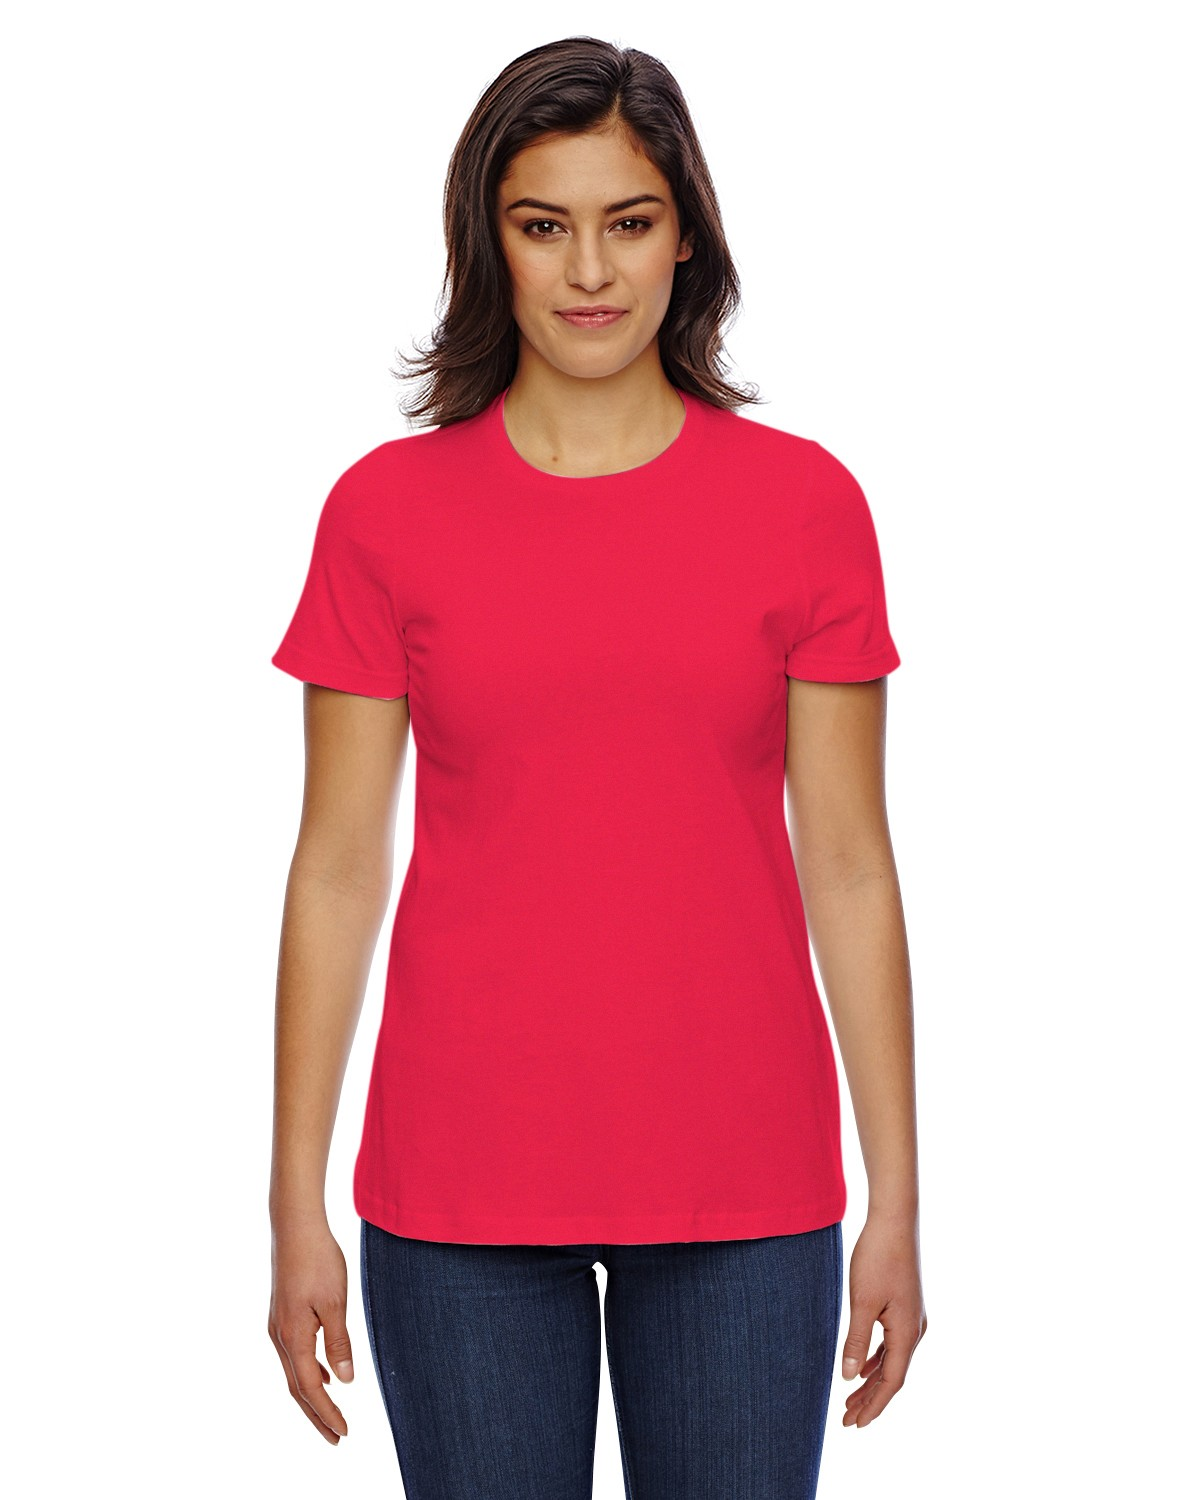 23215W American Apparel RED